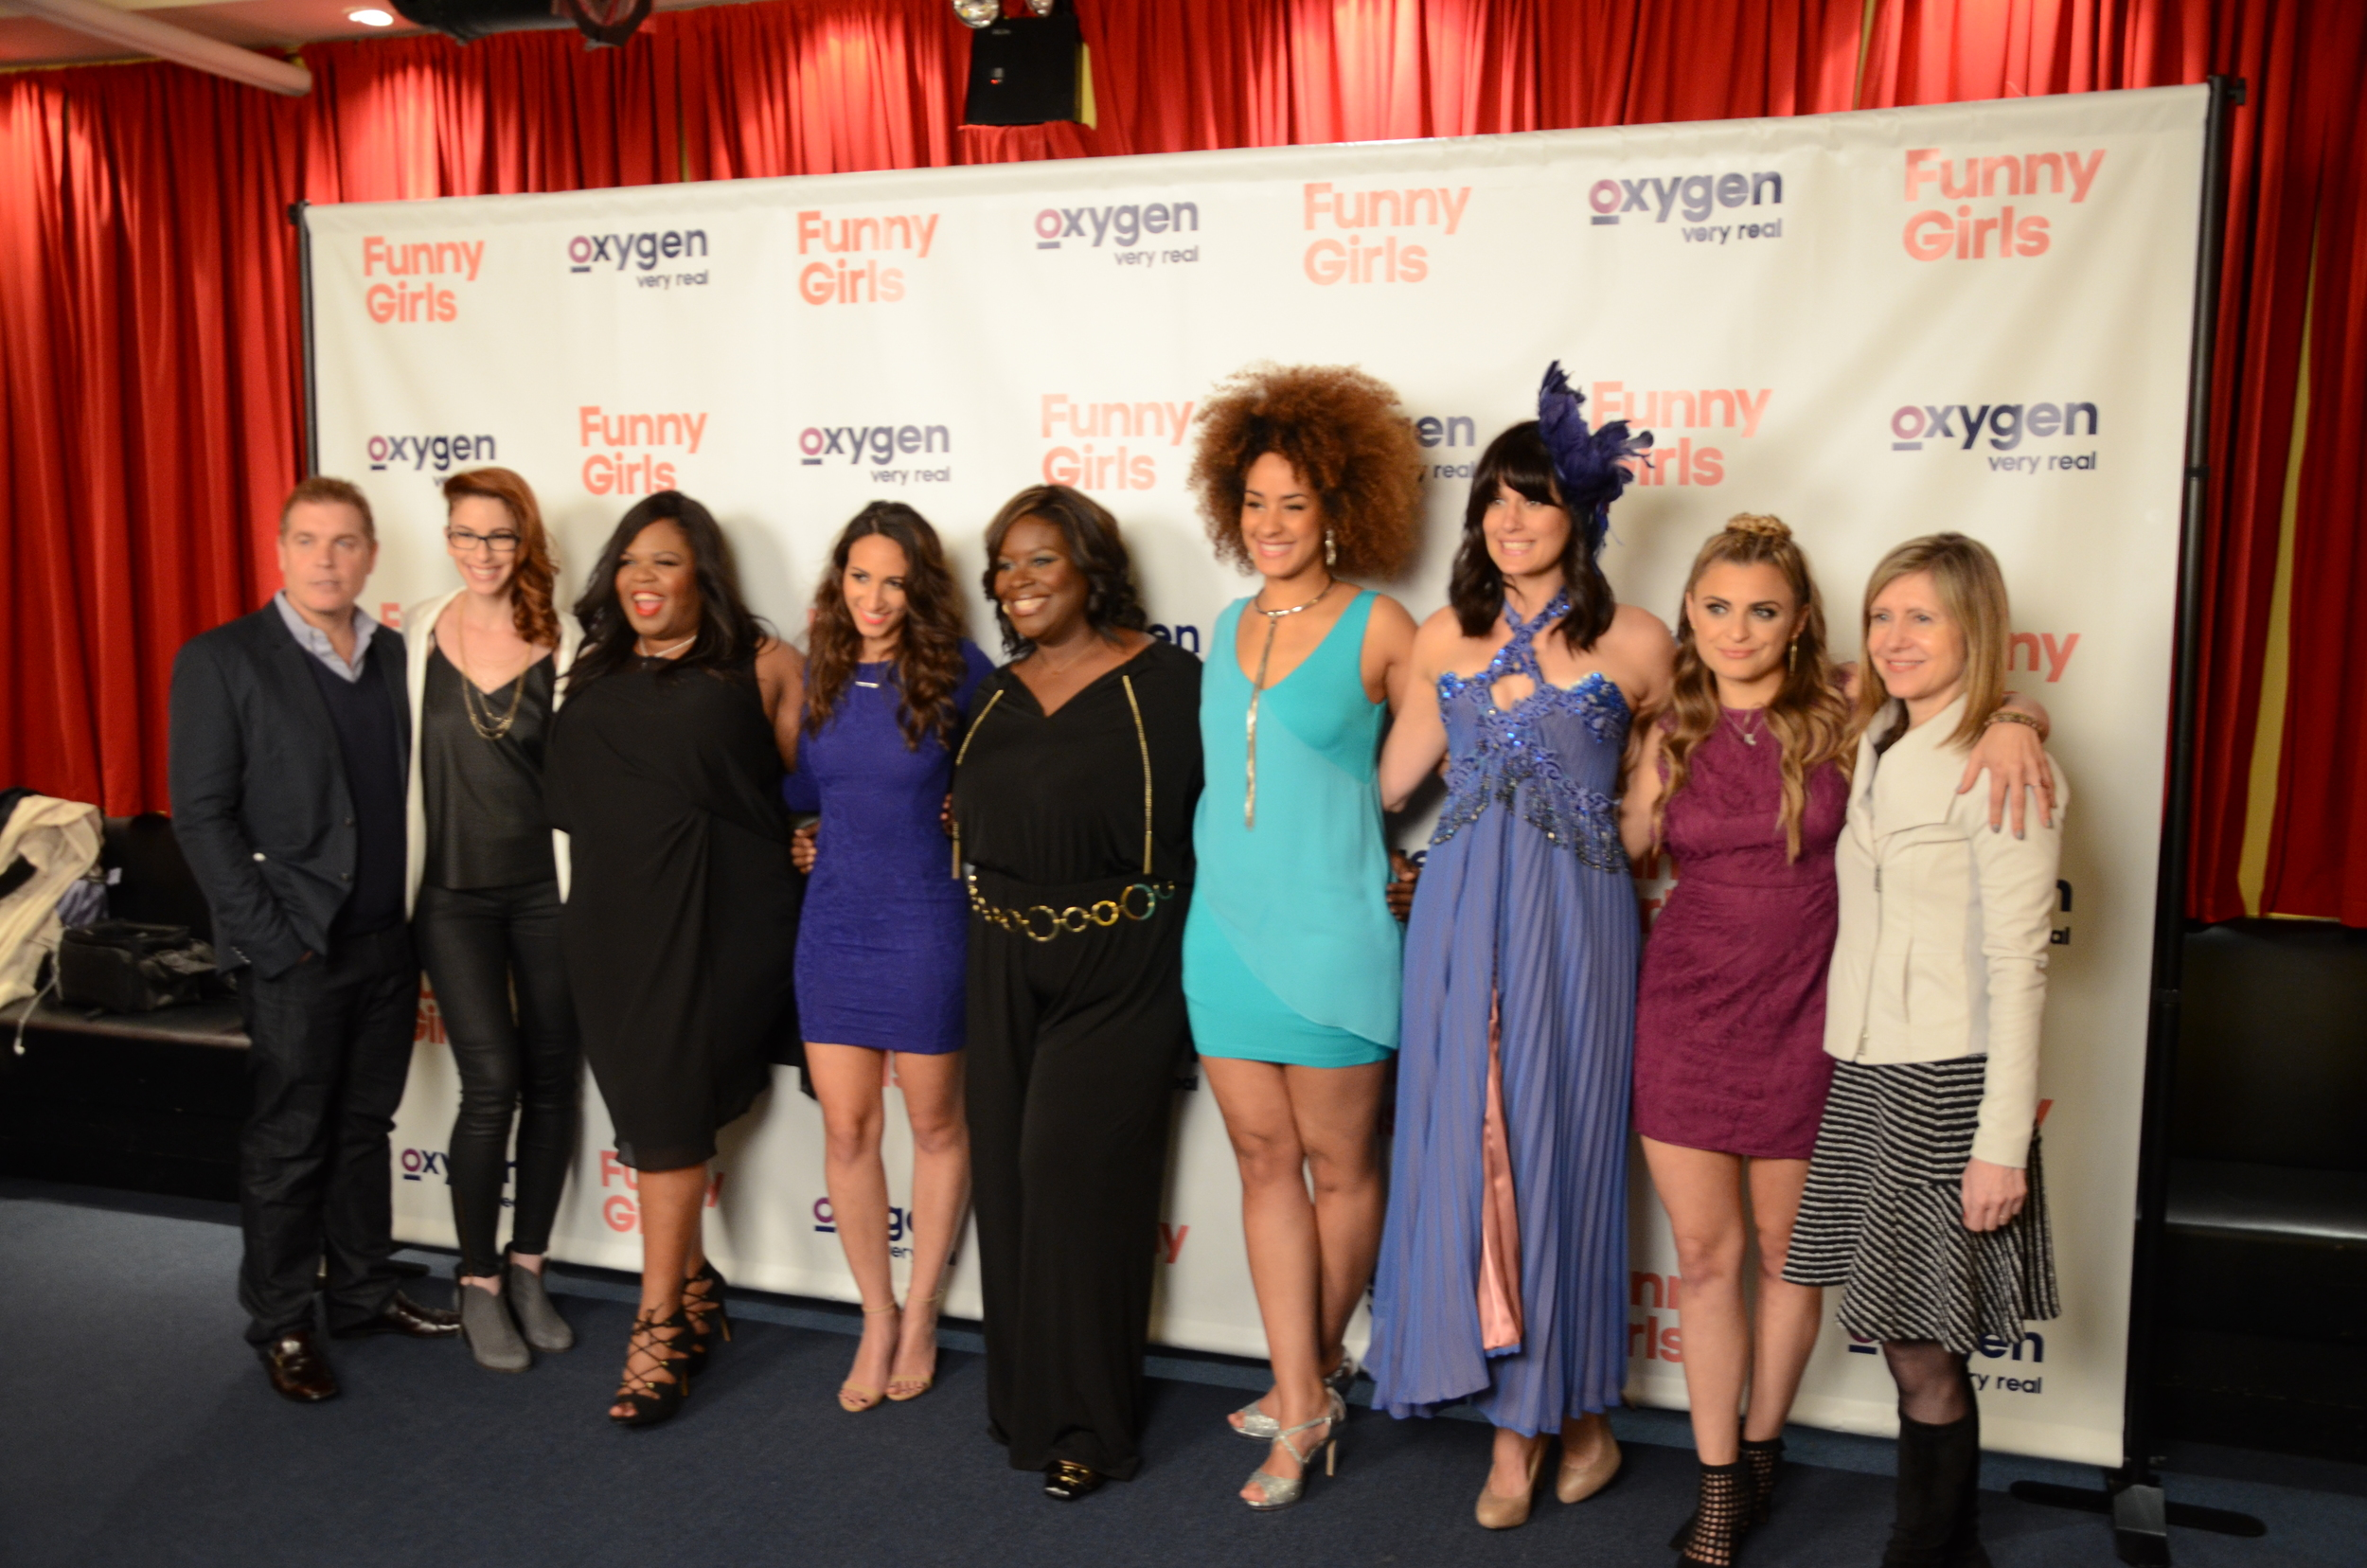 Oxygen Presents Funny Girls Comedy Show